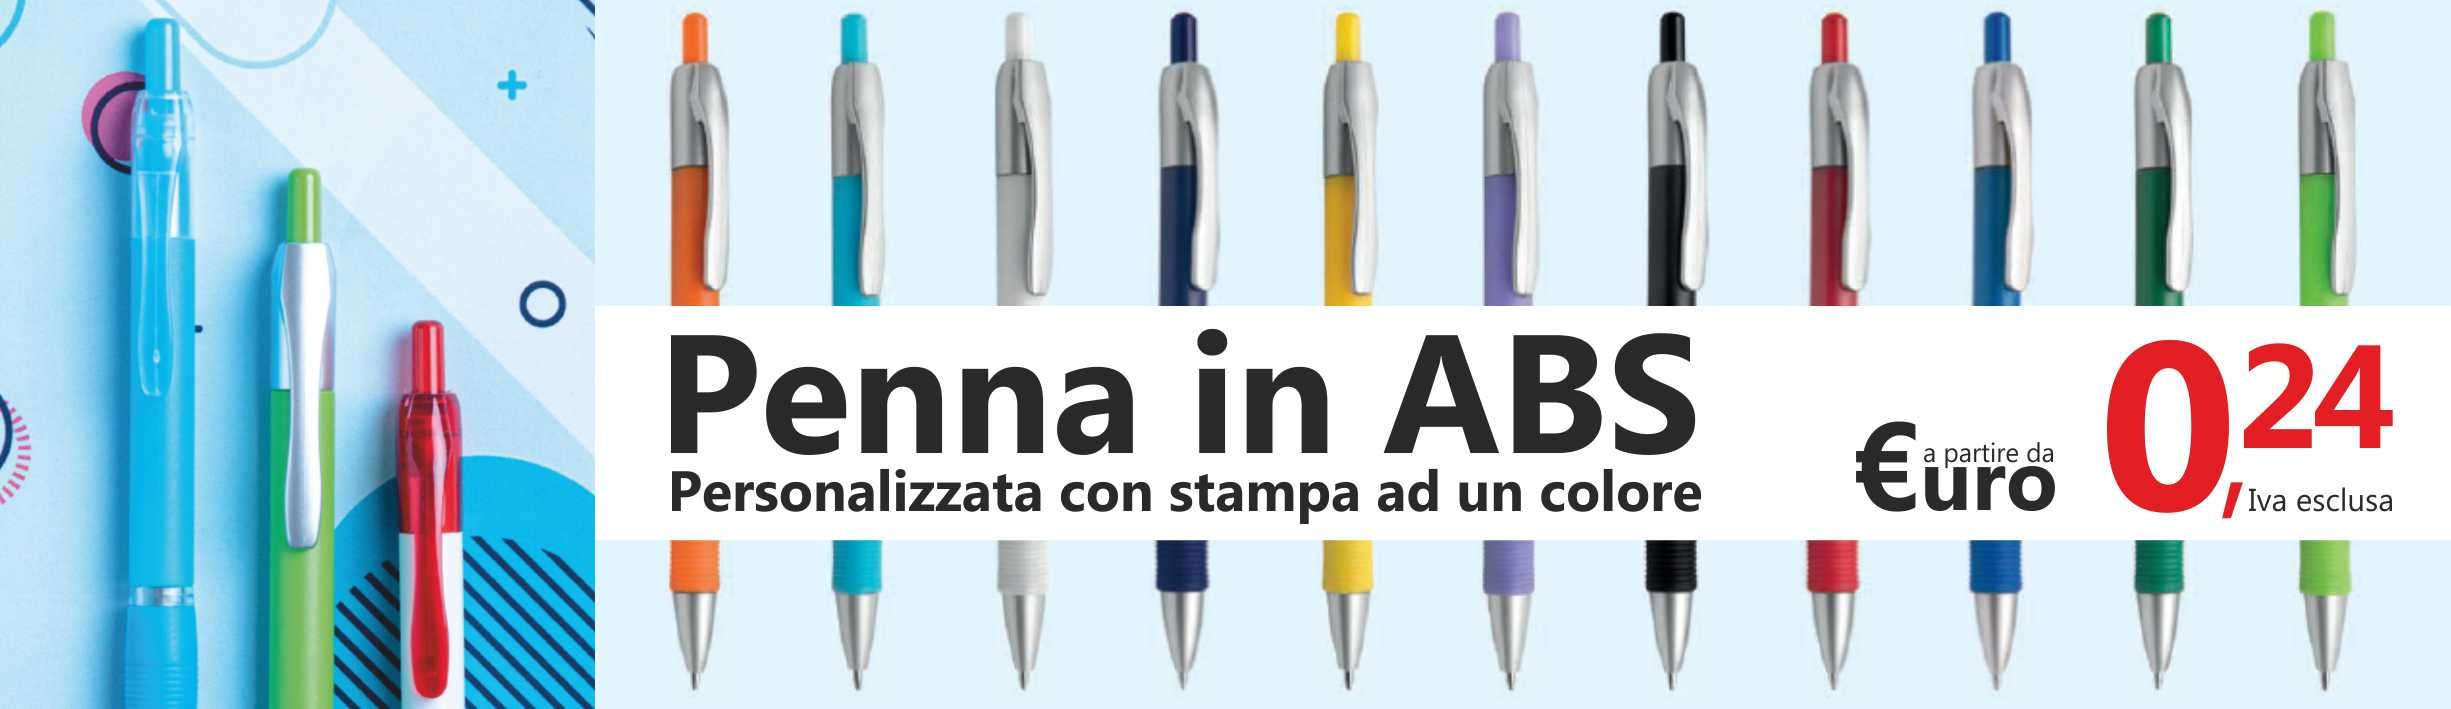 Penna in abs